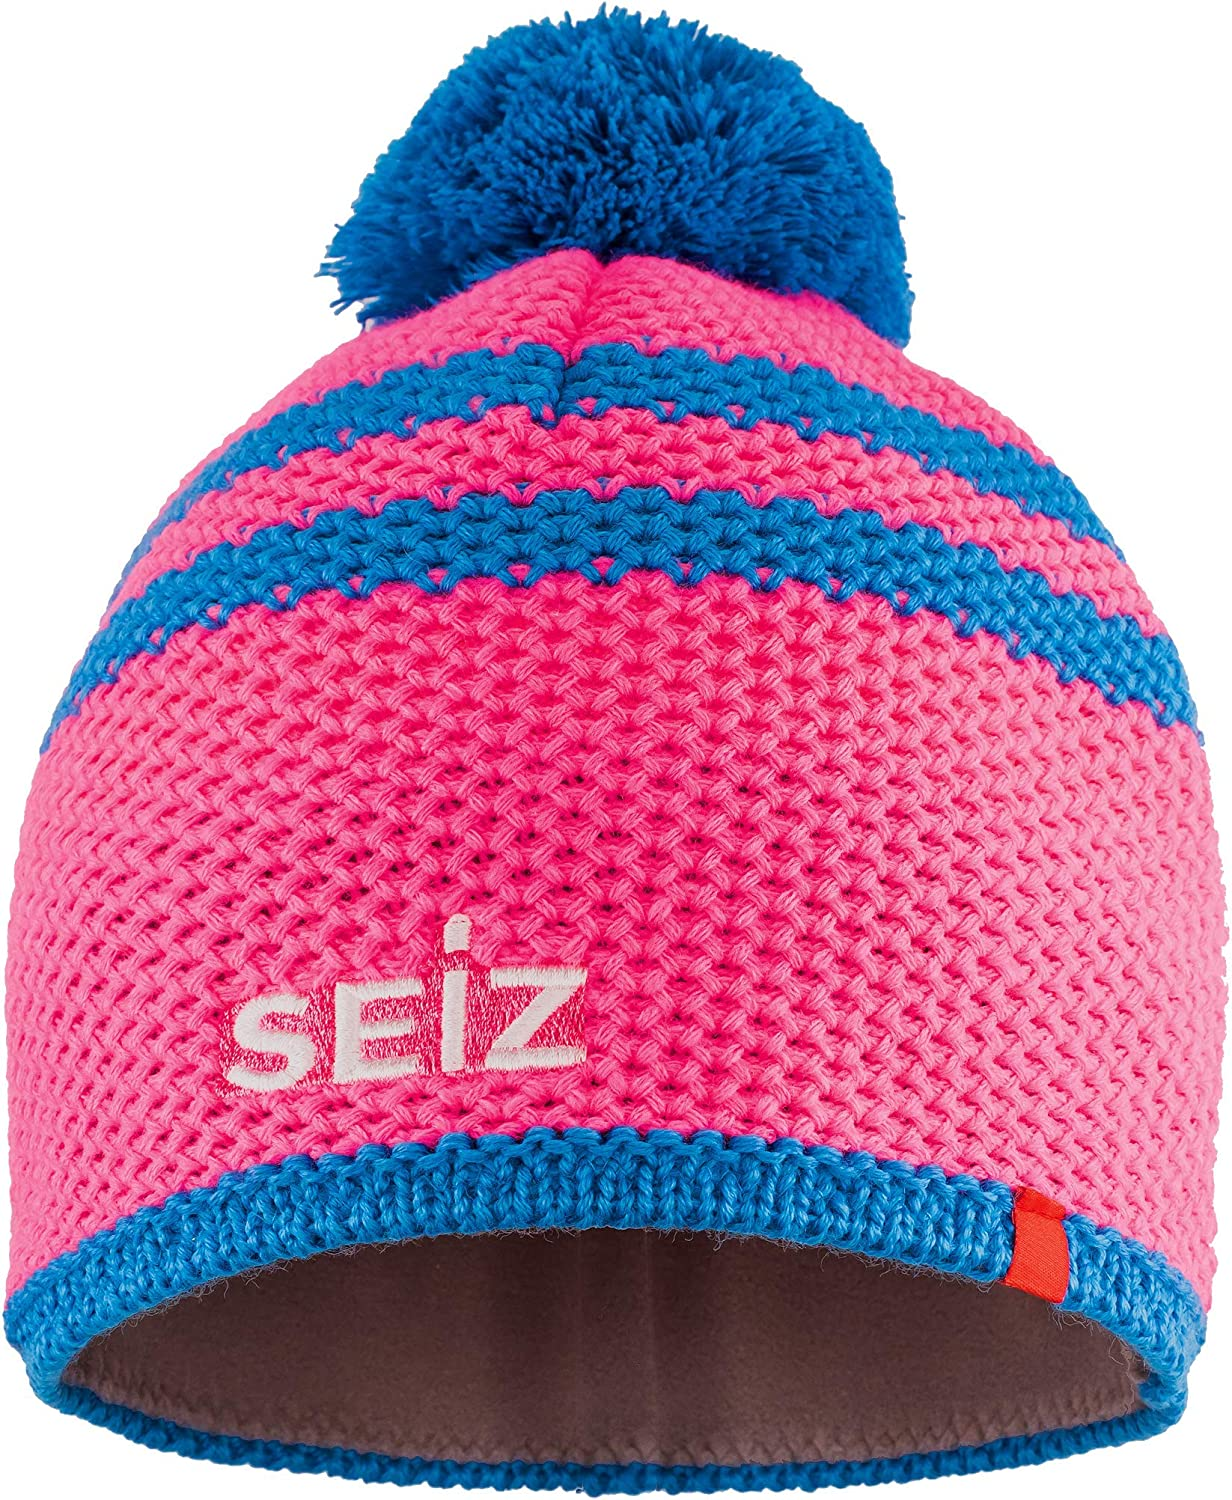 SEiZ Unisex – Adults' Knitted Beanie Surprise price Ranking TOP7 Fu MBL